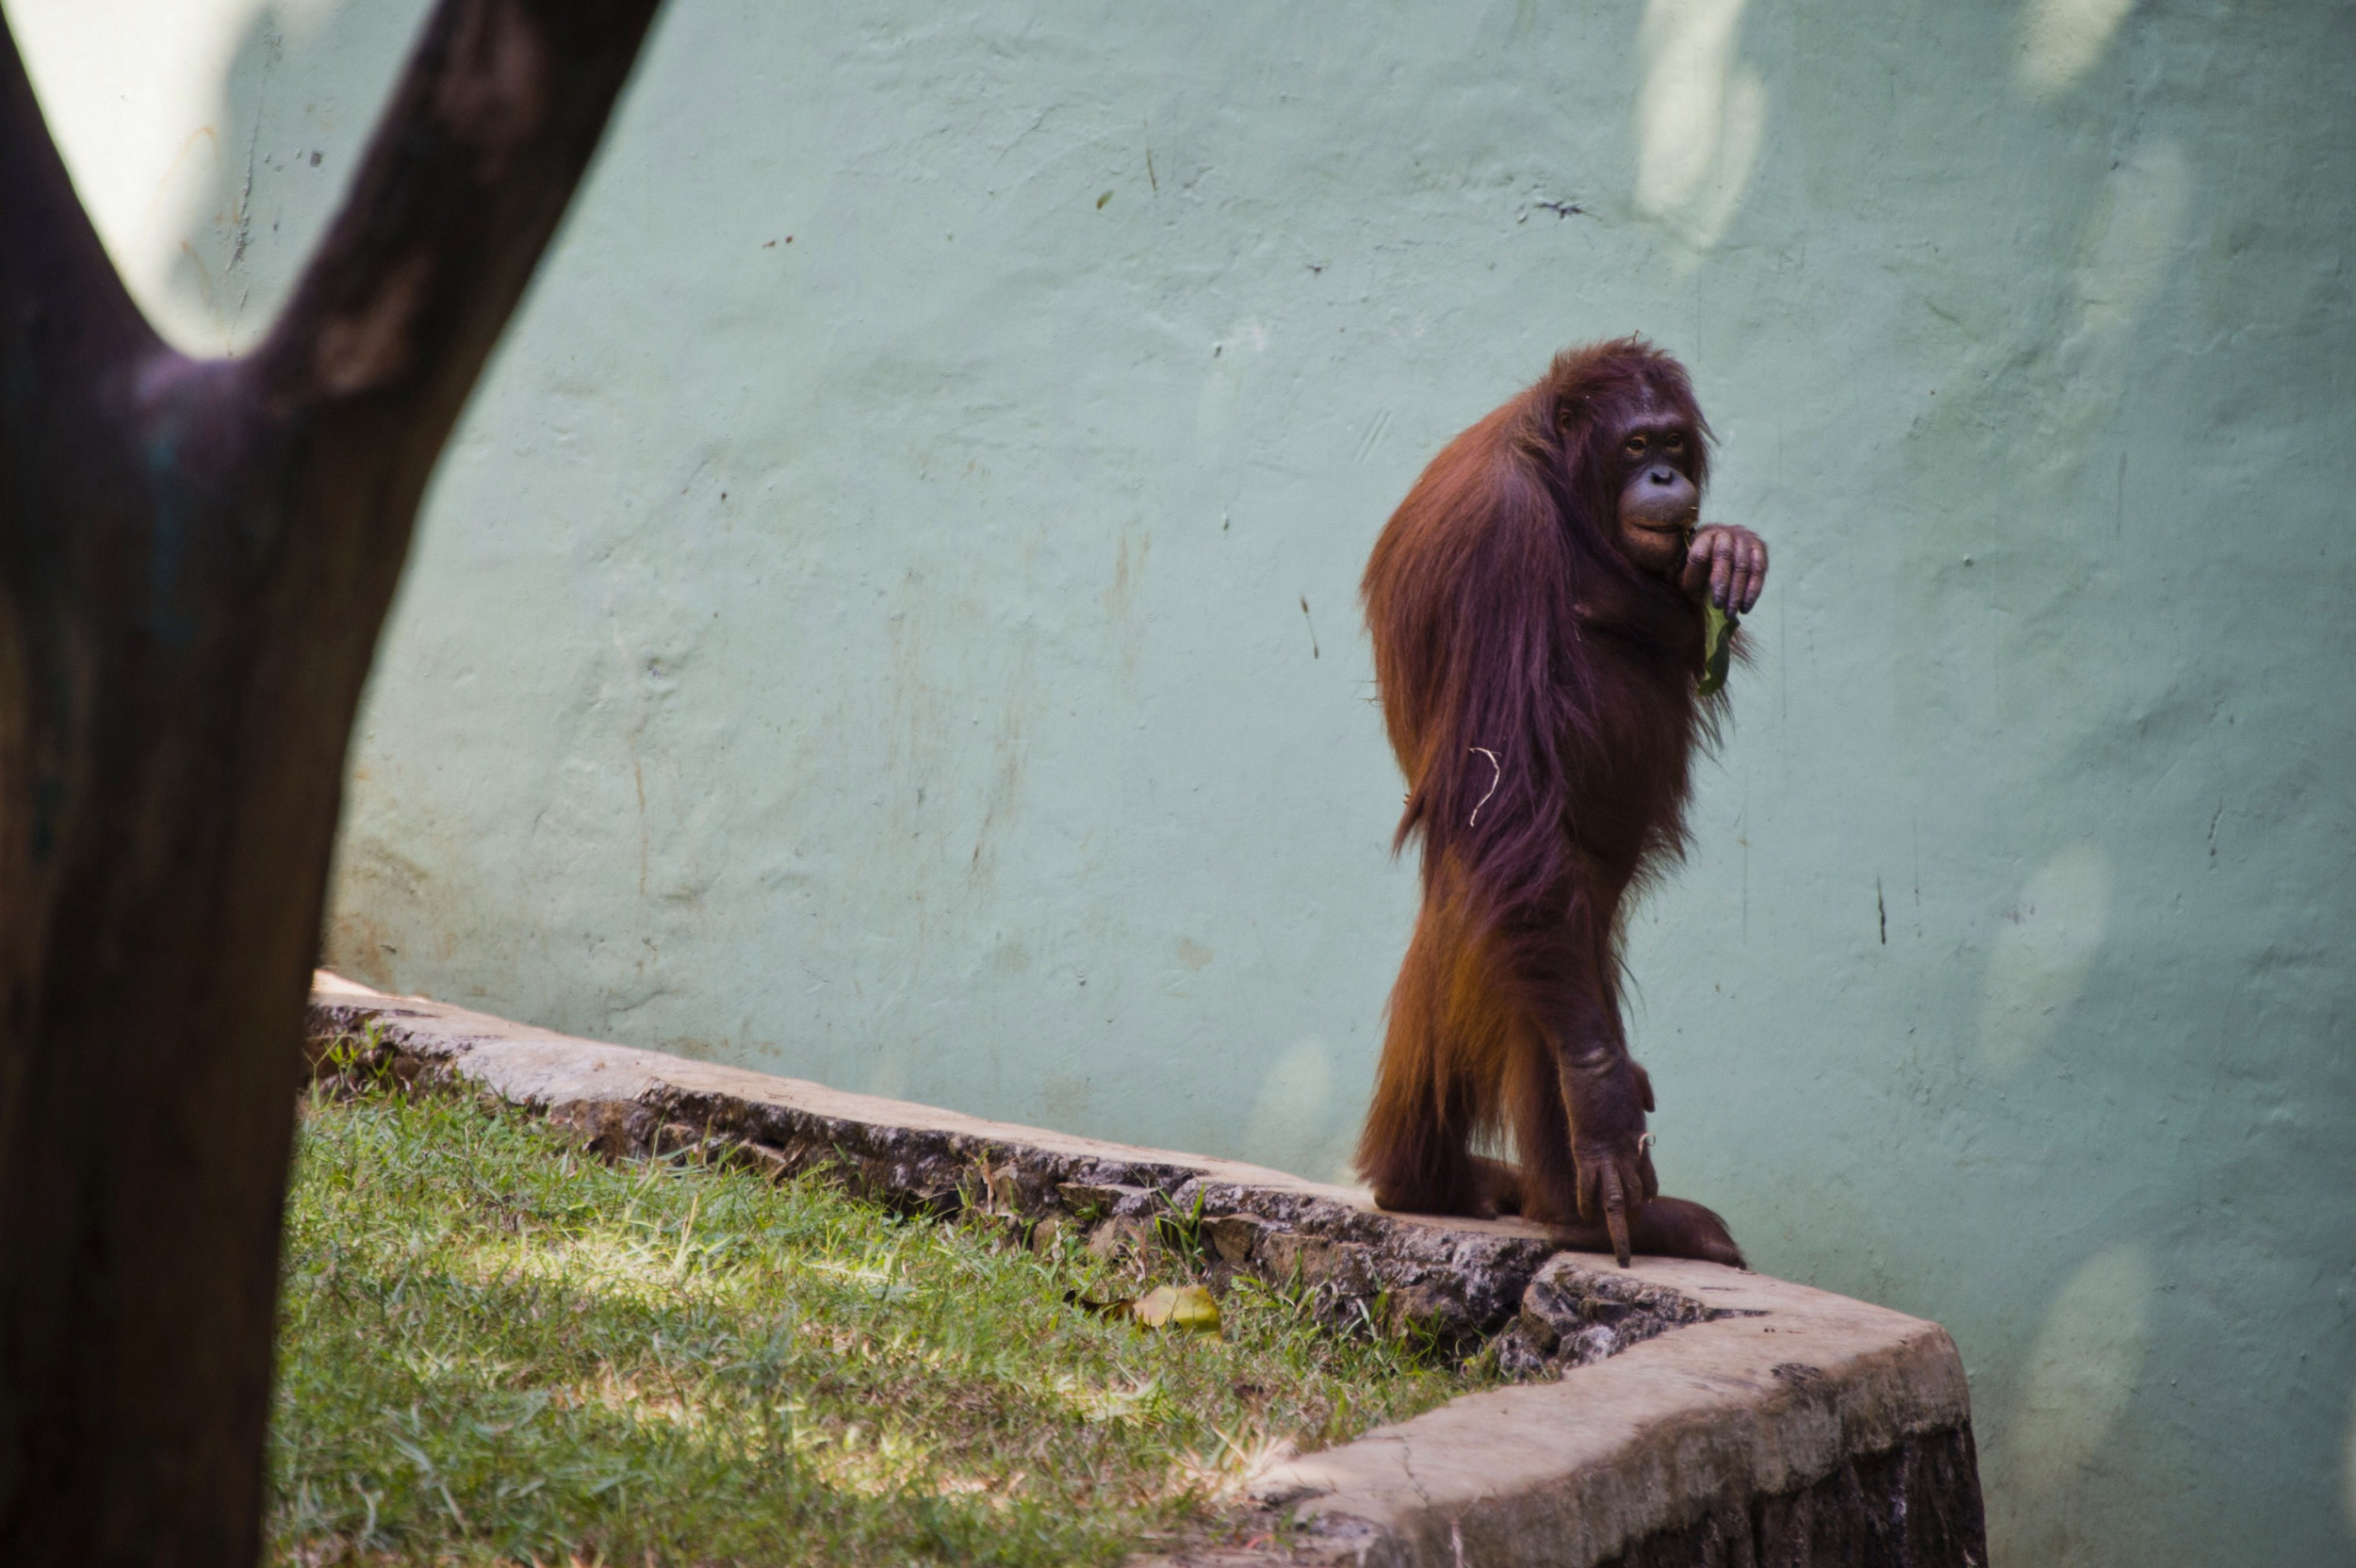 Orangutan Granted Legal Personhood, Moves to Florida, Becomes Florida Woman